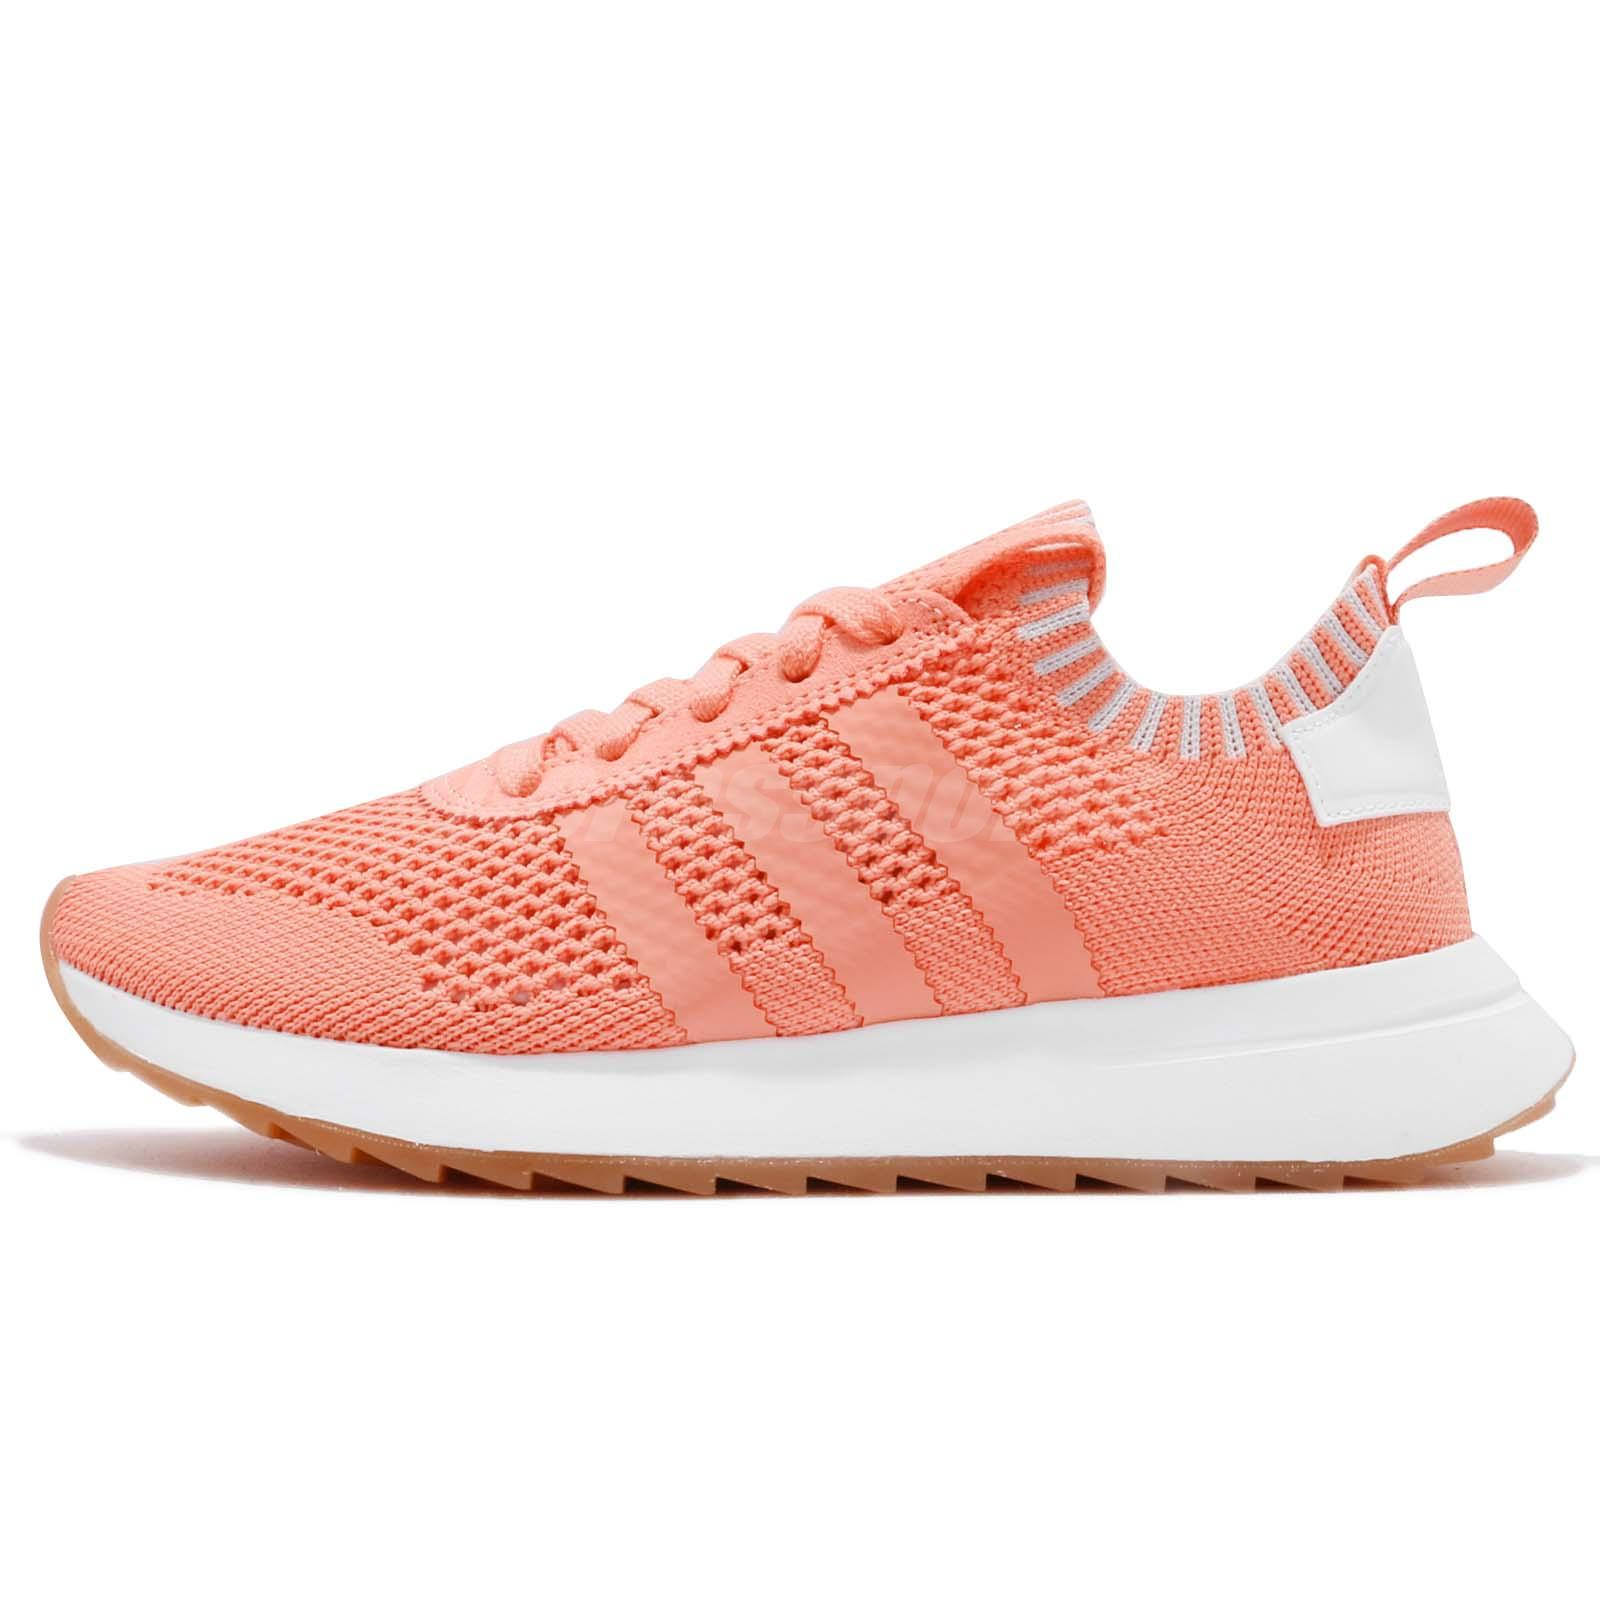 huge discount 39e15 8fdbe adidas Originals FLB W PK Flashback Primeknit Women Running Shoes Sneaker  BY9104